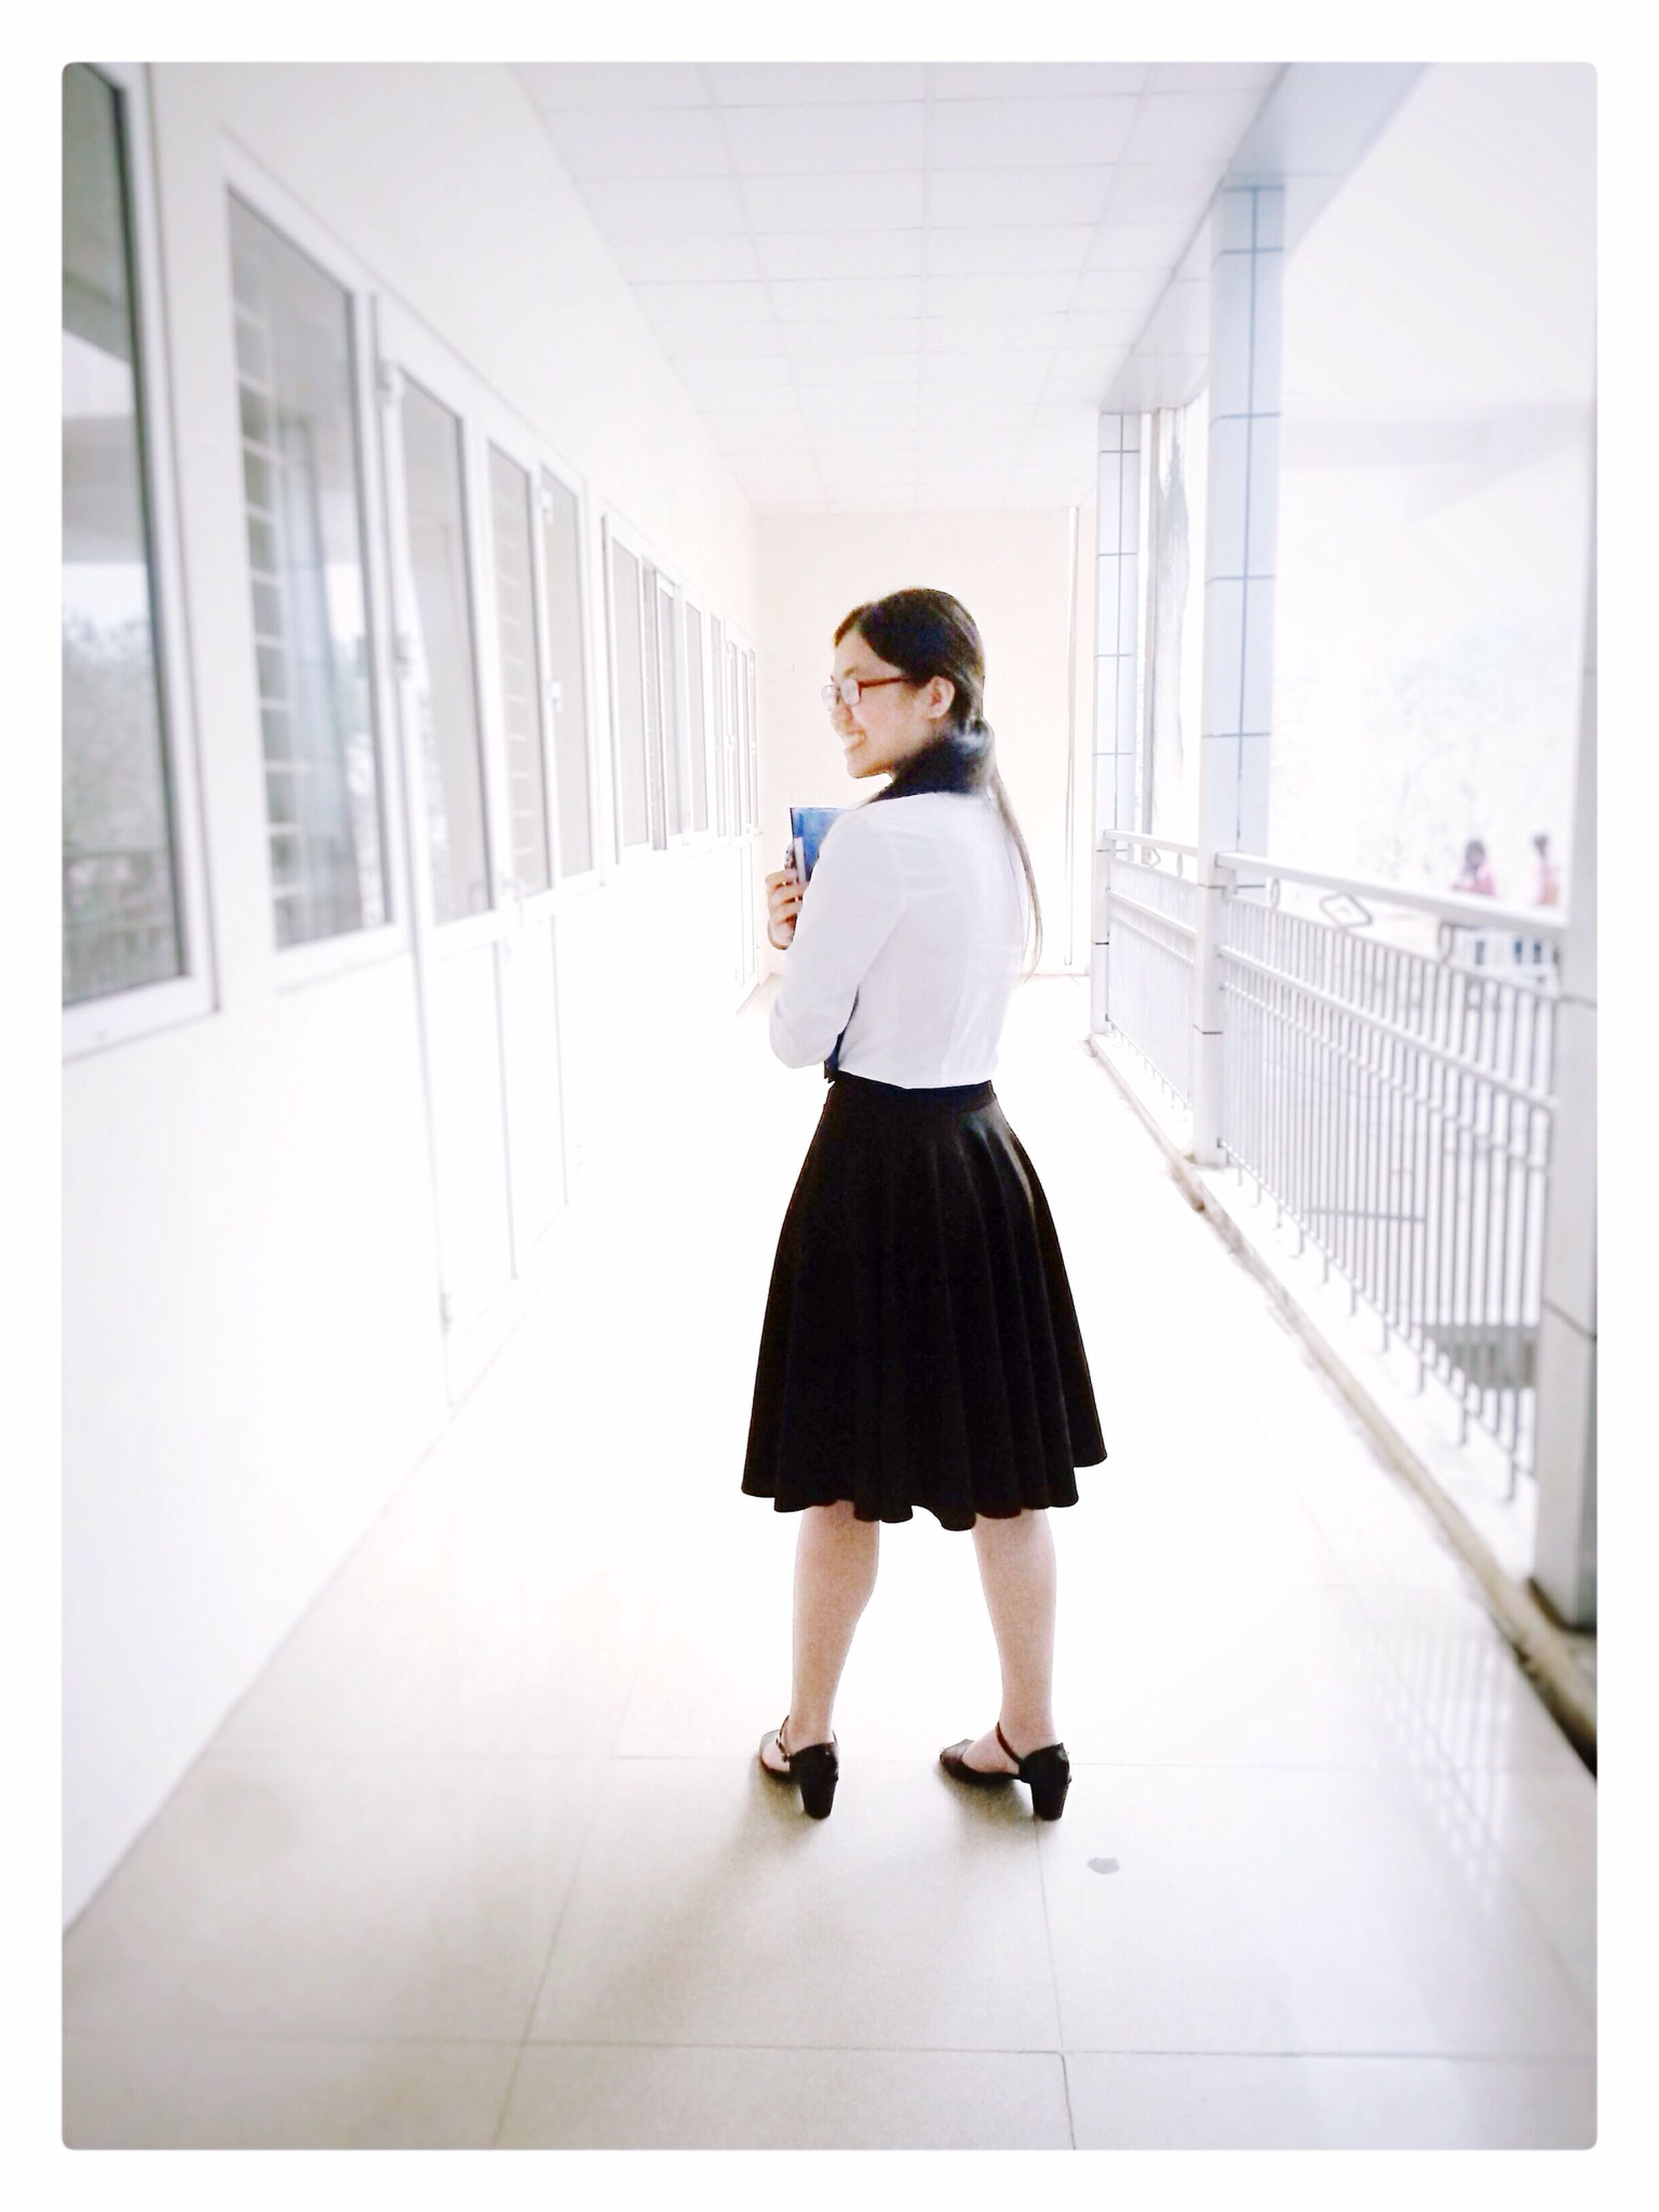 young adult, full length, lifestyles, casual clothing, indoors, architecture, built structure, young women, standing, person, front view, looking at camera, leisure activity, portrait, walking, corridor, building exterior, building